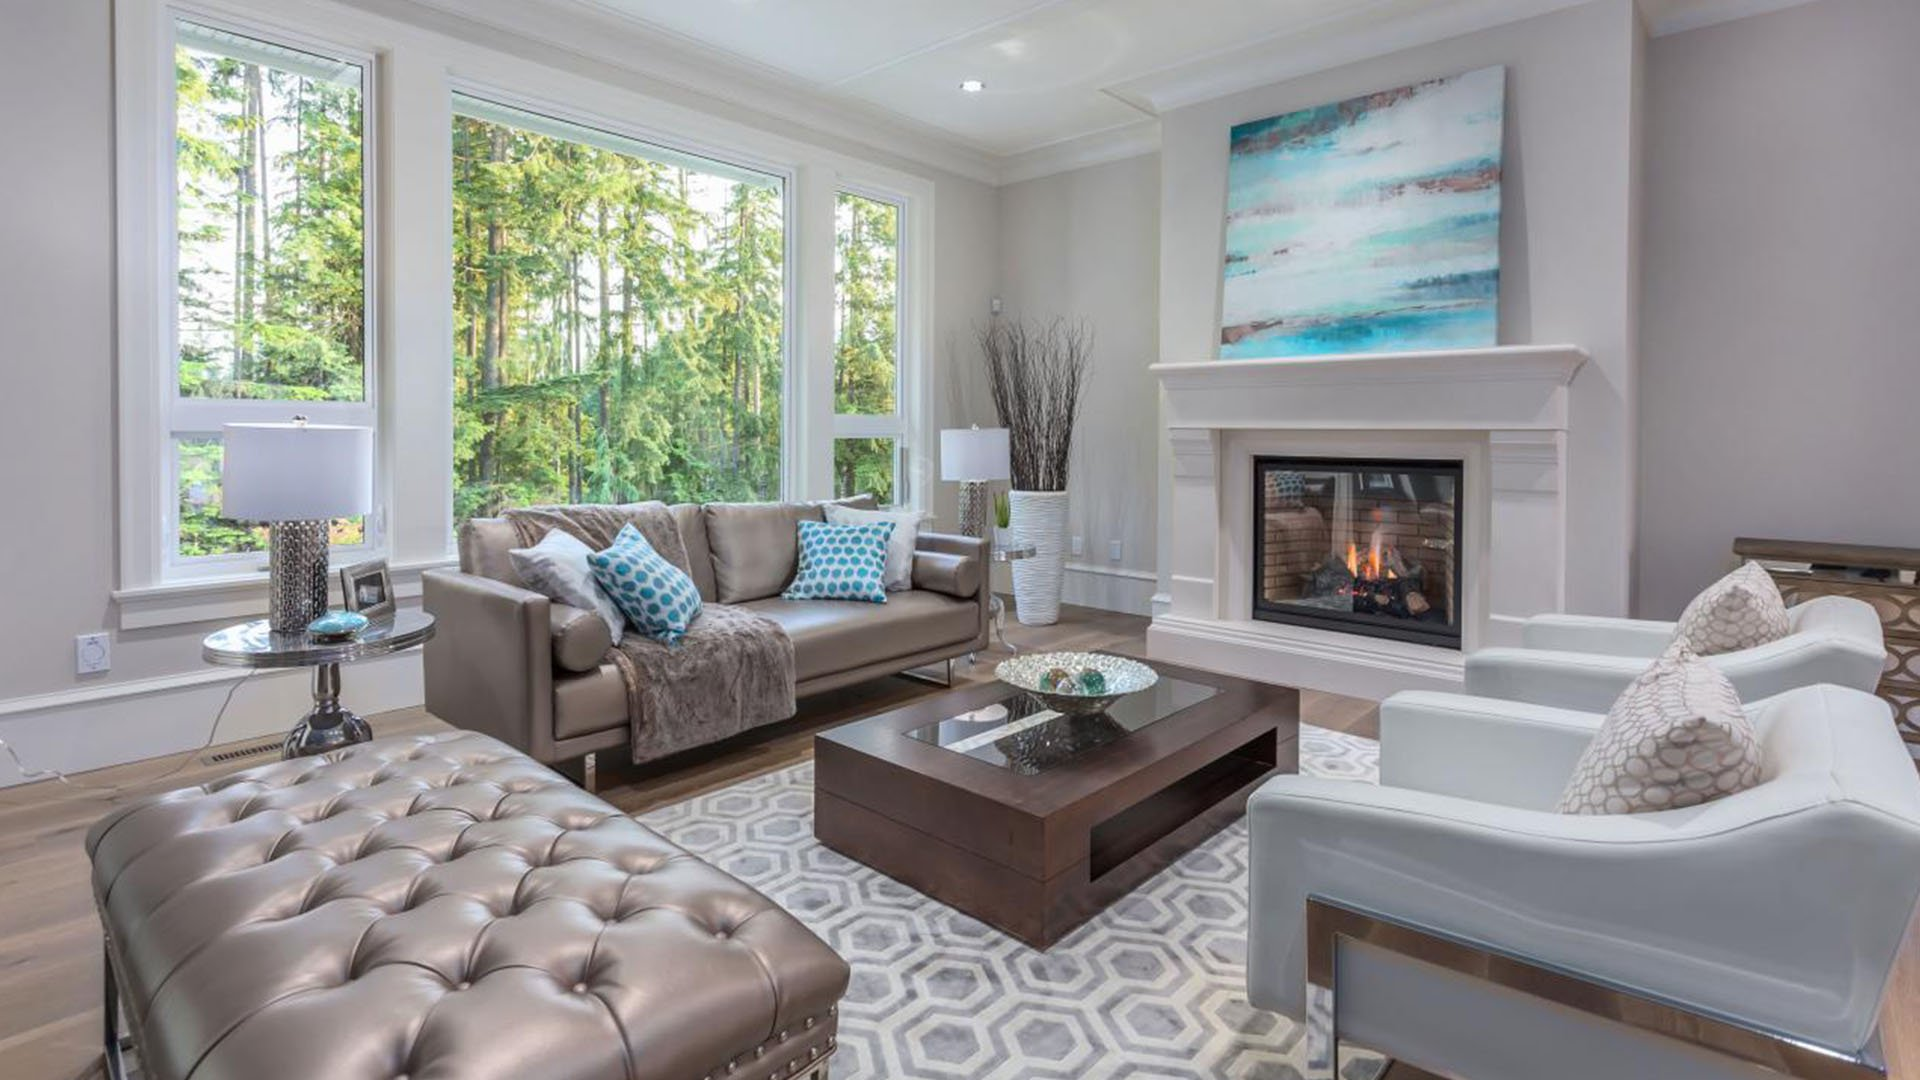 The NARu0027s 2017 Profile Of Home Staging Found That 39 Percent Of Agents  Believe Home Staging U201cgreatly Decreasesu201d The Time A Home Spends On The  Market, While ...